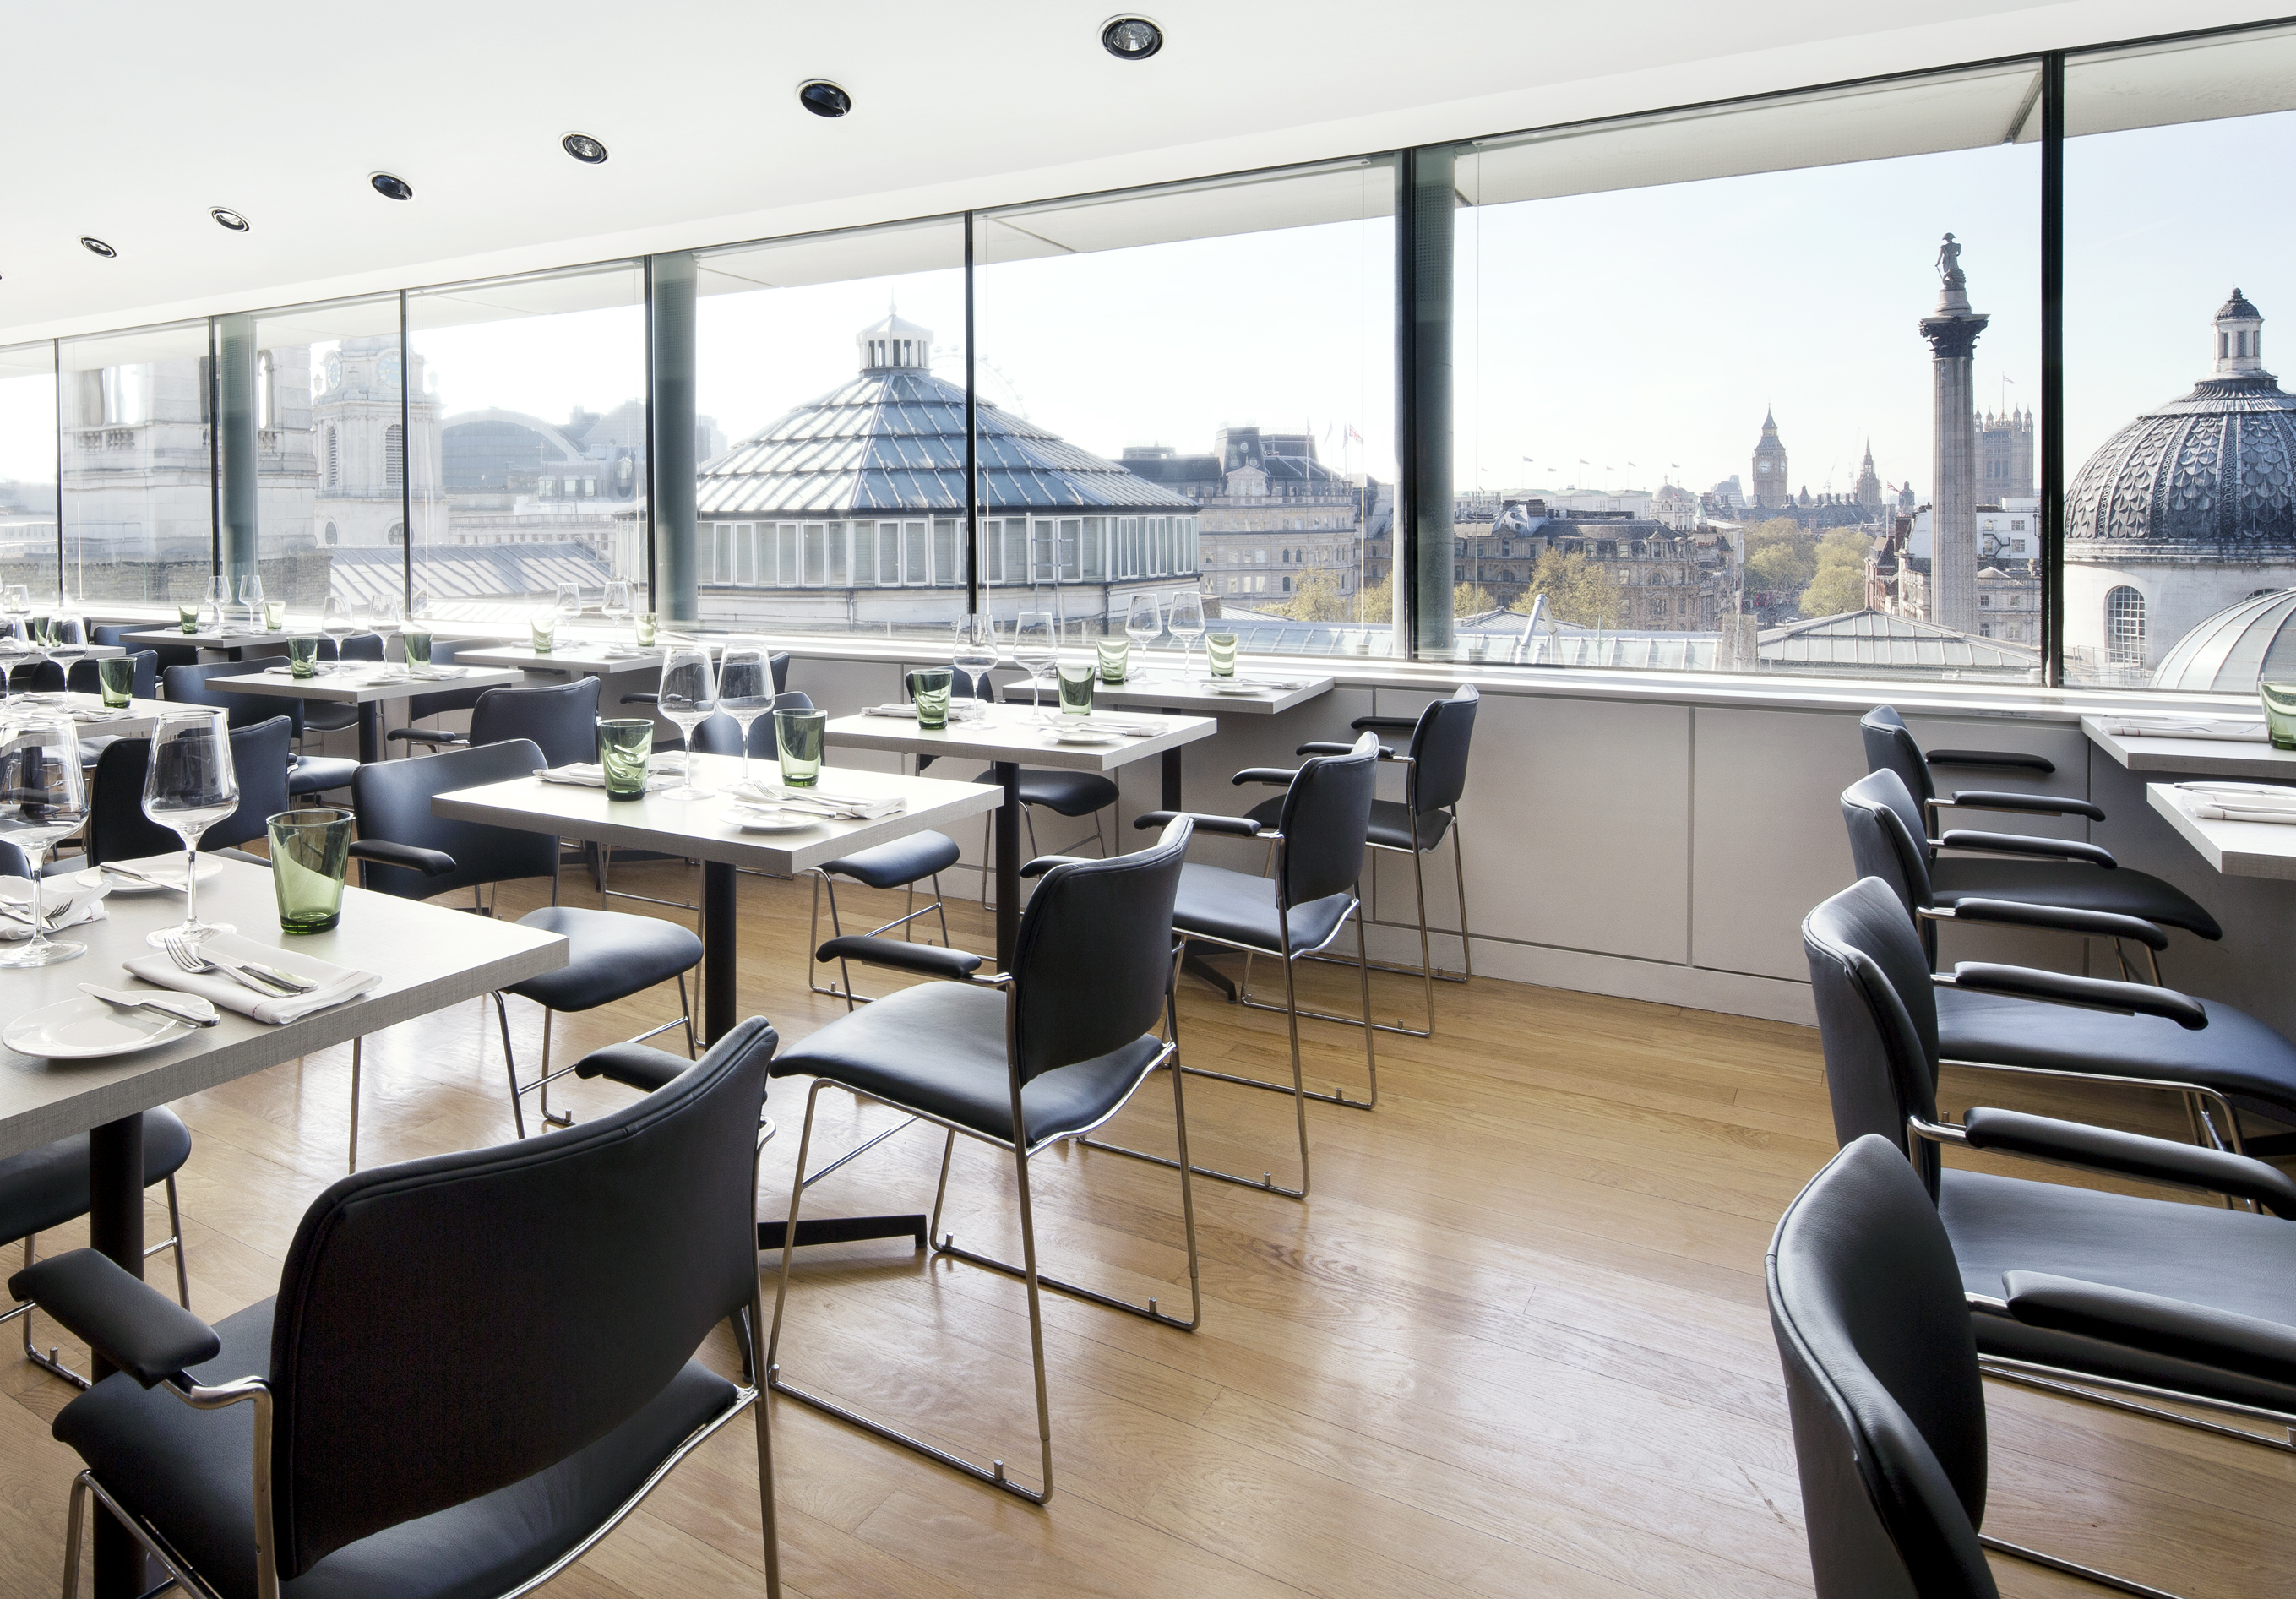 28 restaurants with perfect panoramas londons best restaurants view from the dining room at the portrait restaurant trafalgar square malvernweather Image collections